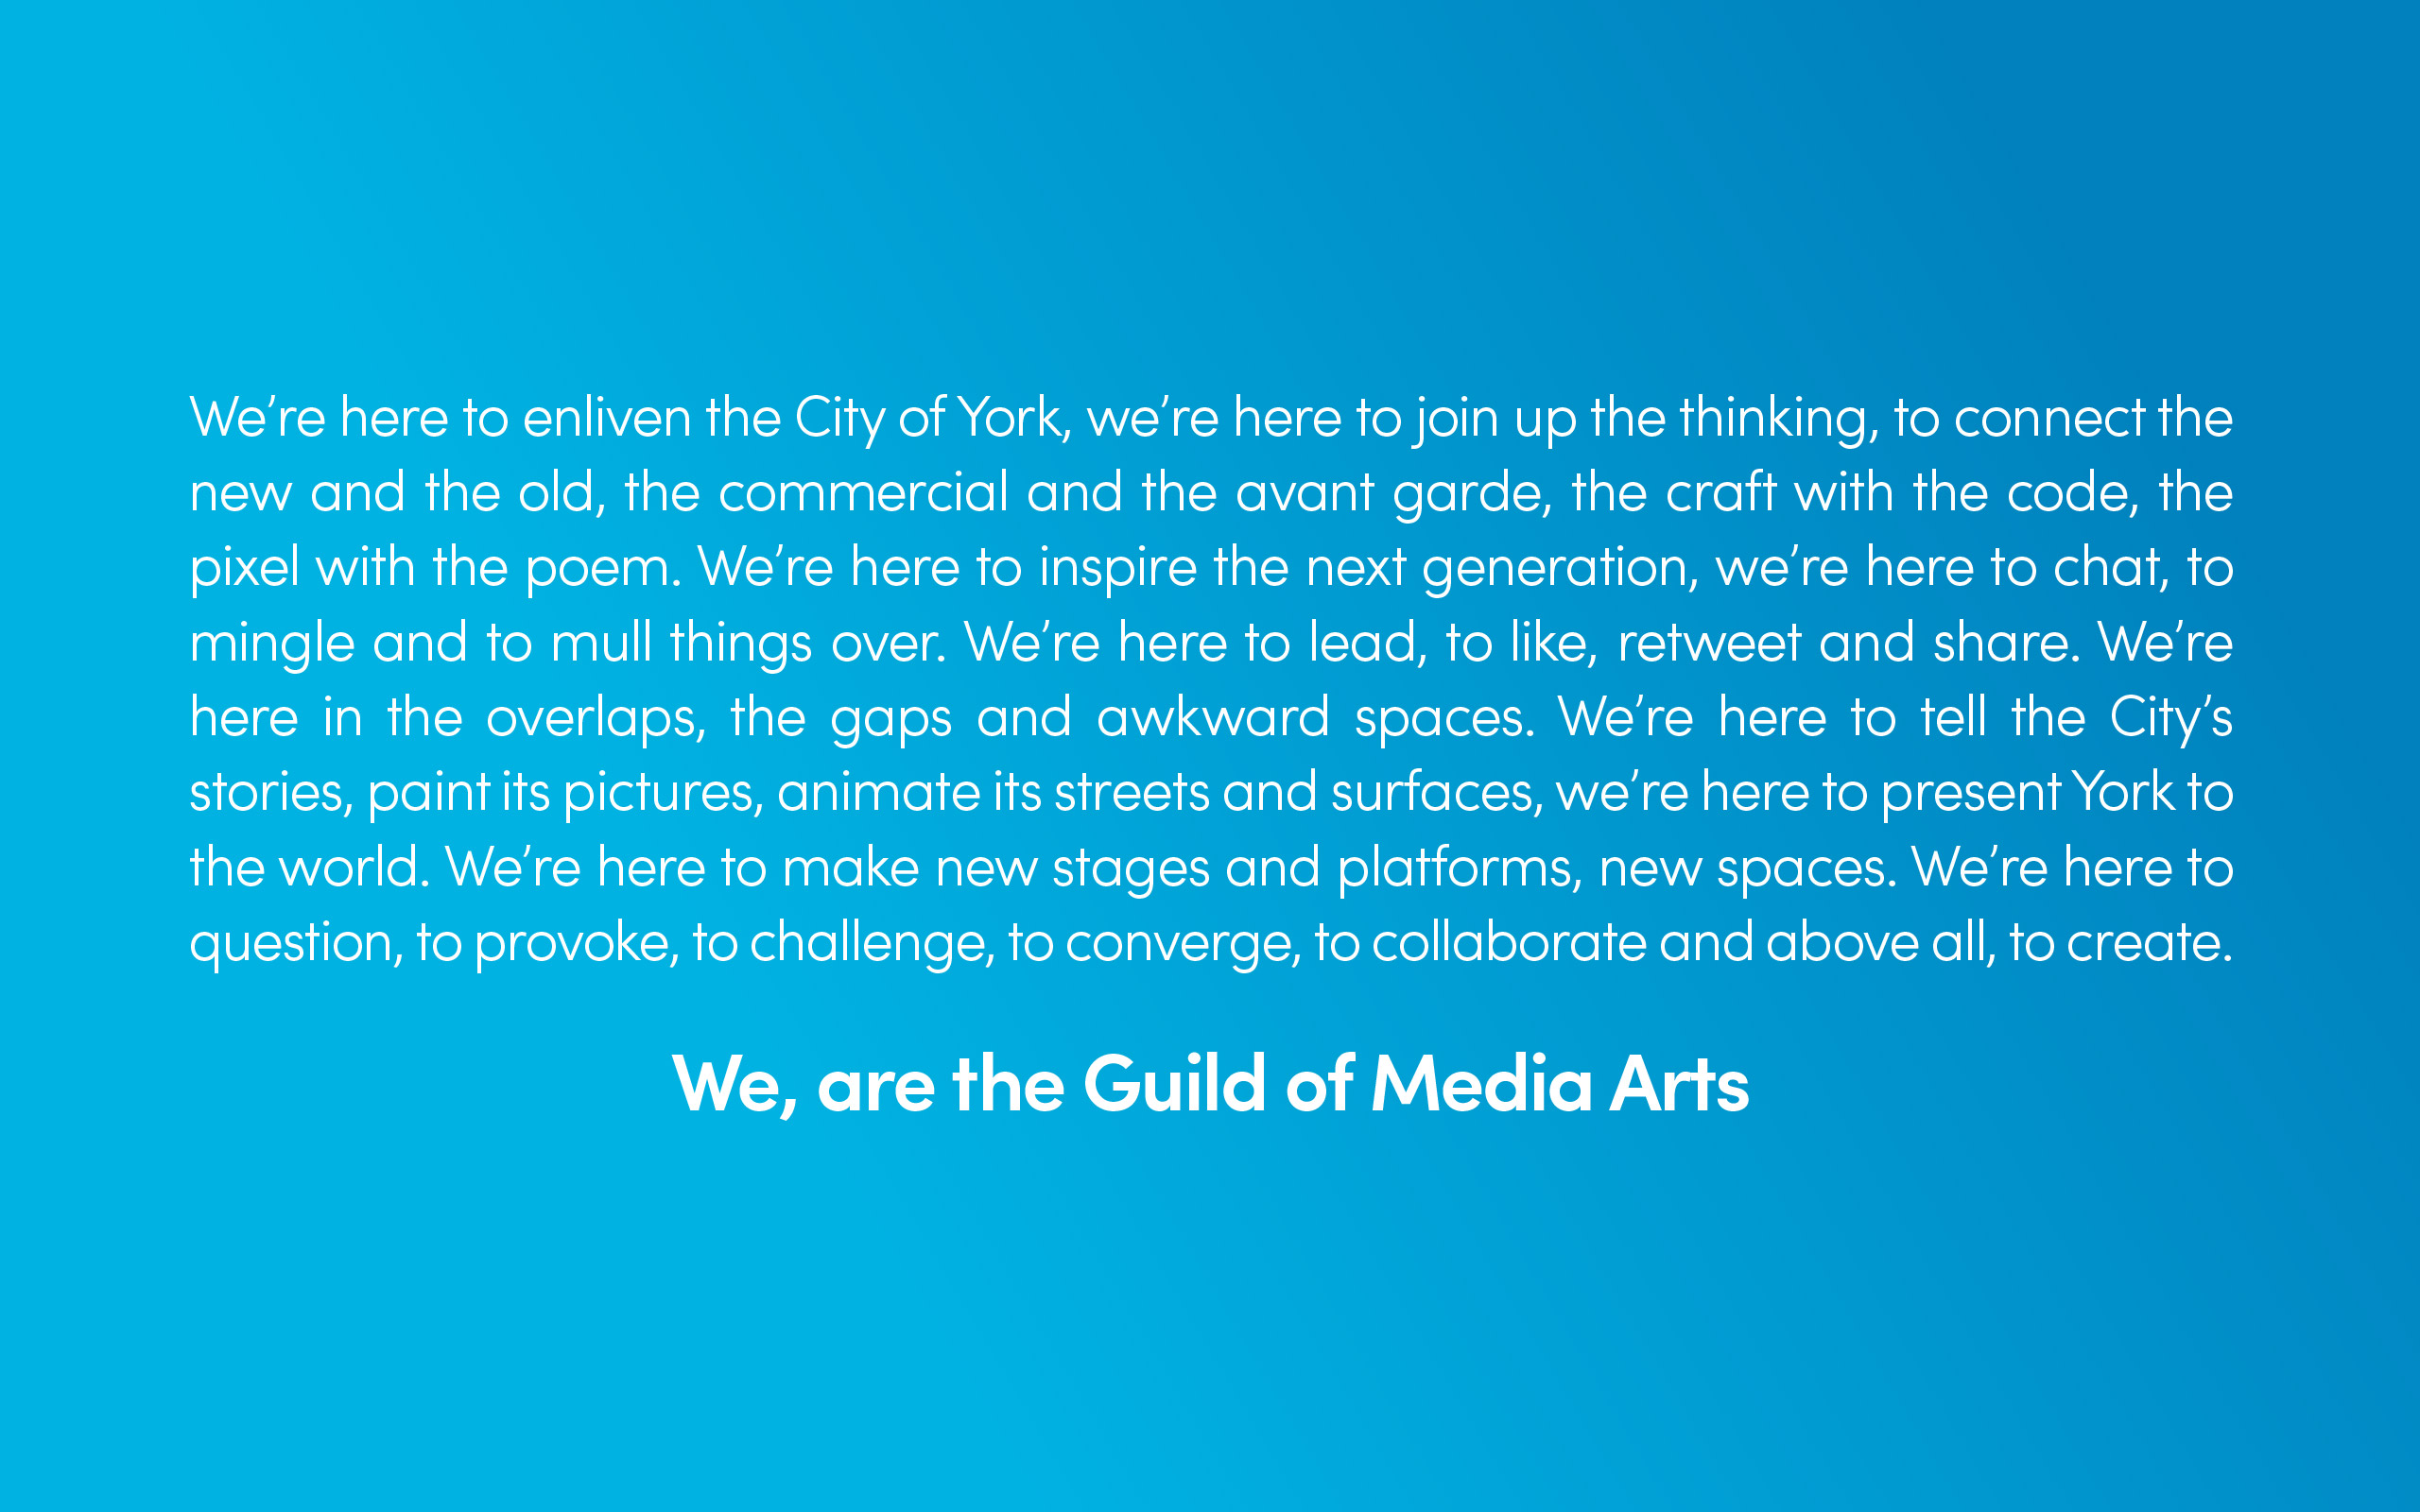 Guild of Media Arts